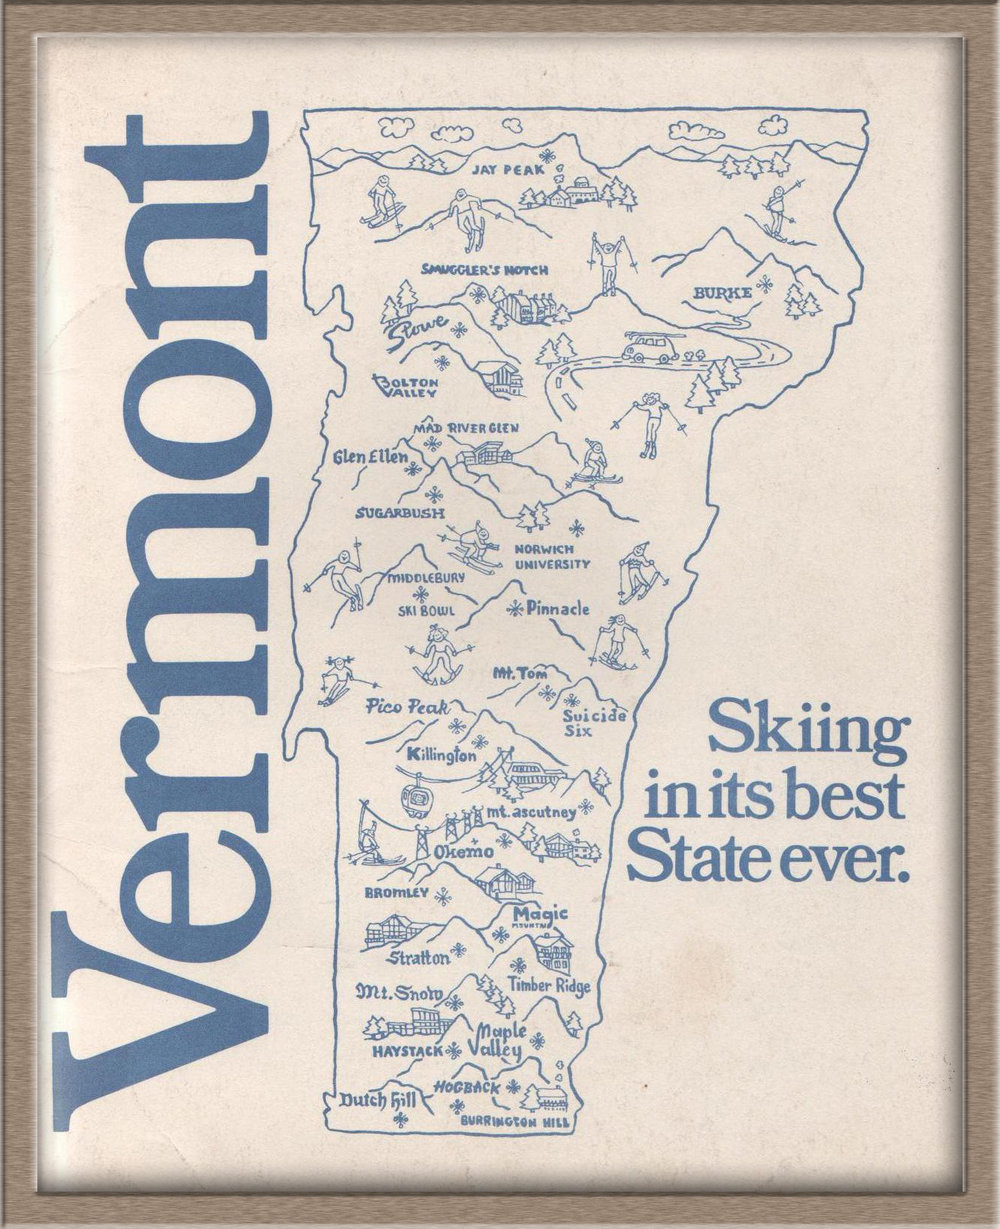 Vermont Ski Areas Association poster from 1973